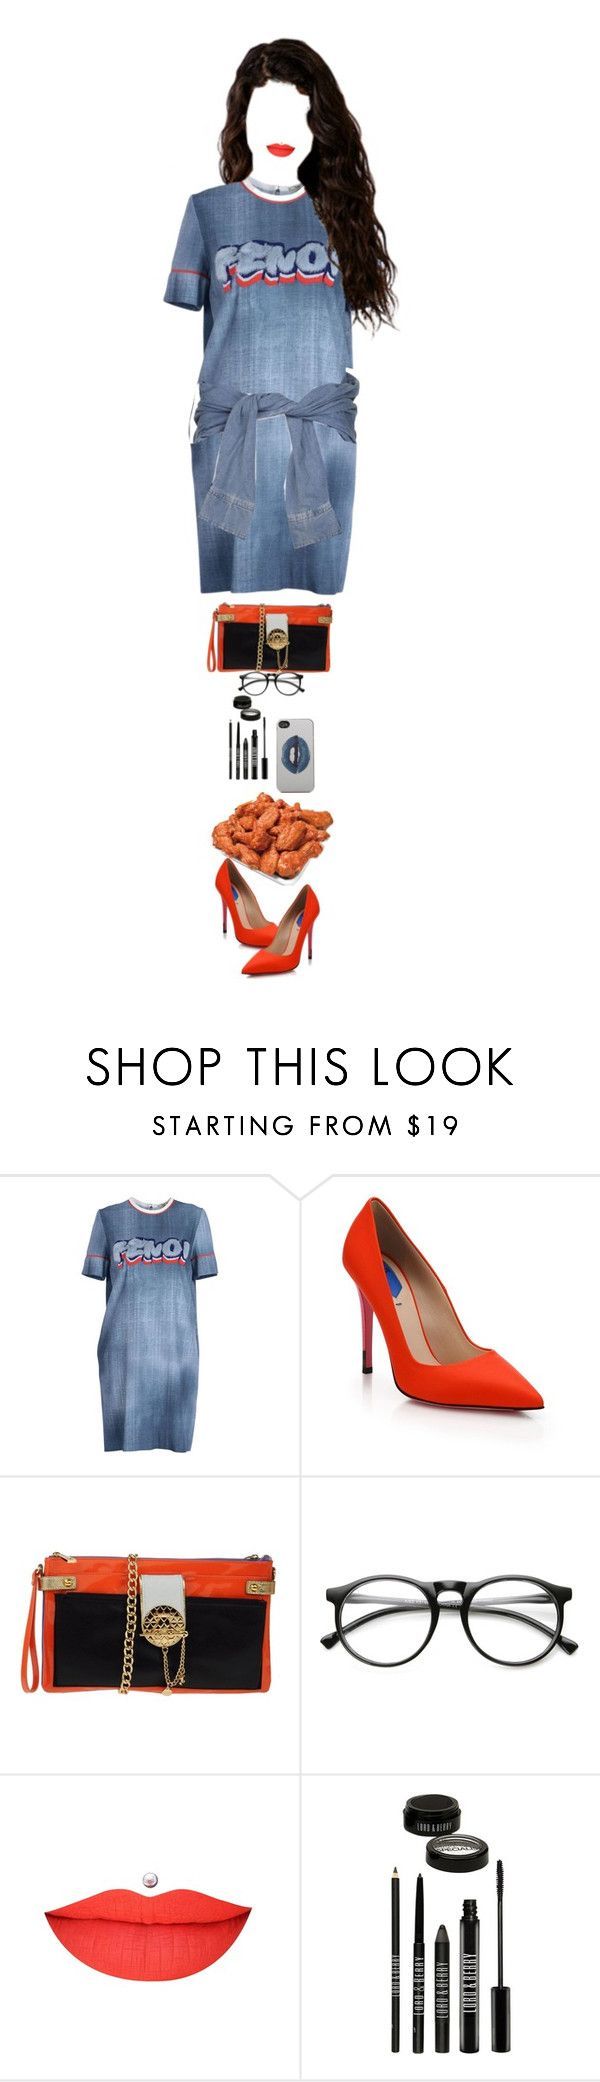 """at the Lakers VS Kings game at the Staples Center, Los Angeles"" by luxury-kamar ❤ liked on Polyvore featuring Fendi, River Island, Just Cavalli, Lord & Berry, Zero Gravity and INC International Concepts"